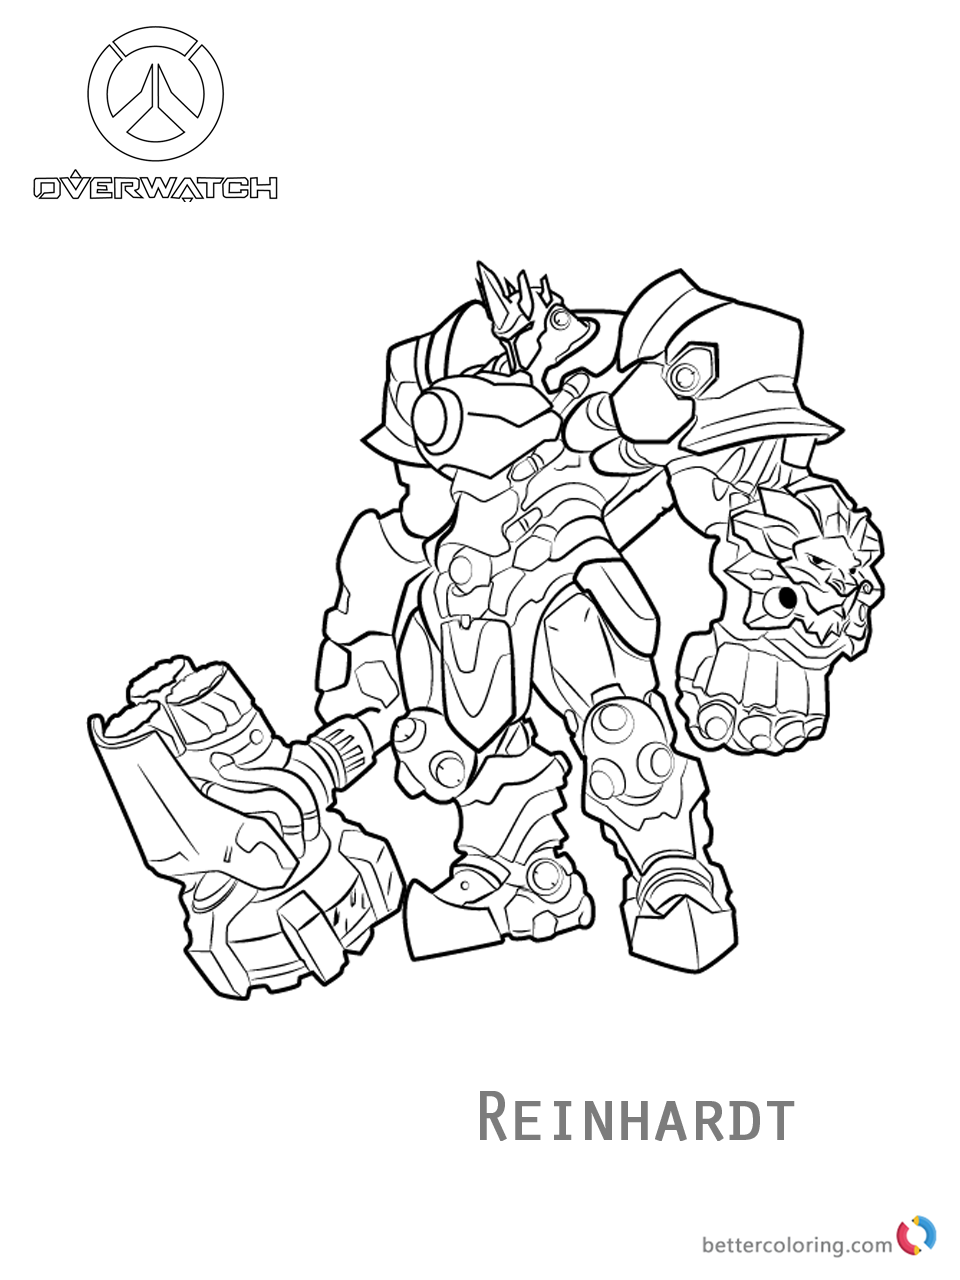 Reinhardt from overwatch coloring pages free printable for Overwatch coloring pages